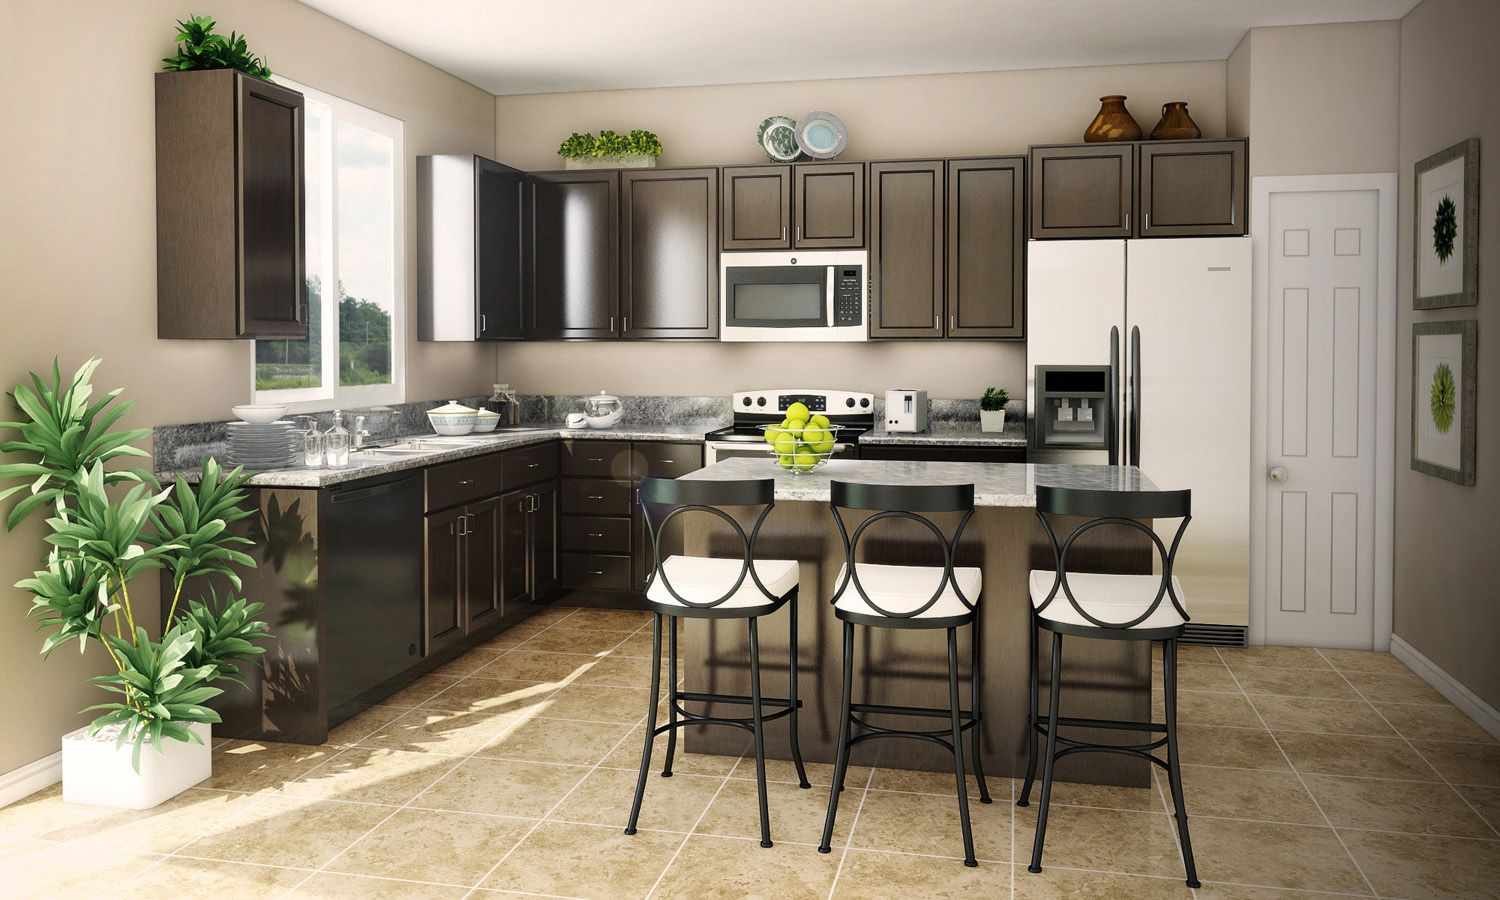 Kitchen featured in The Travertino By Stonefield Home in Merced, CA